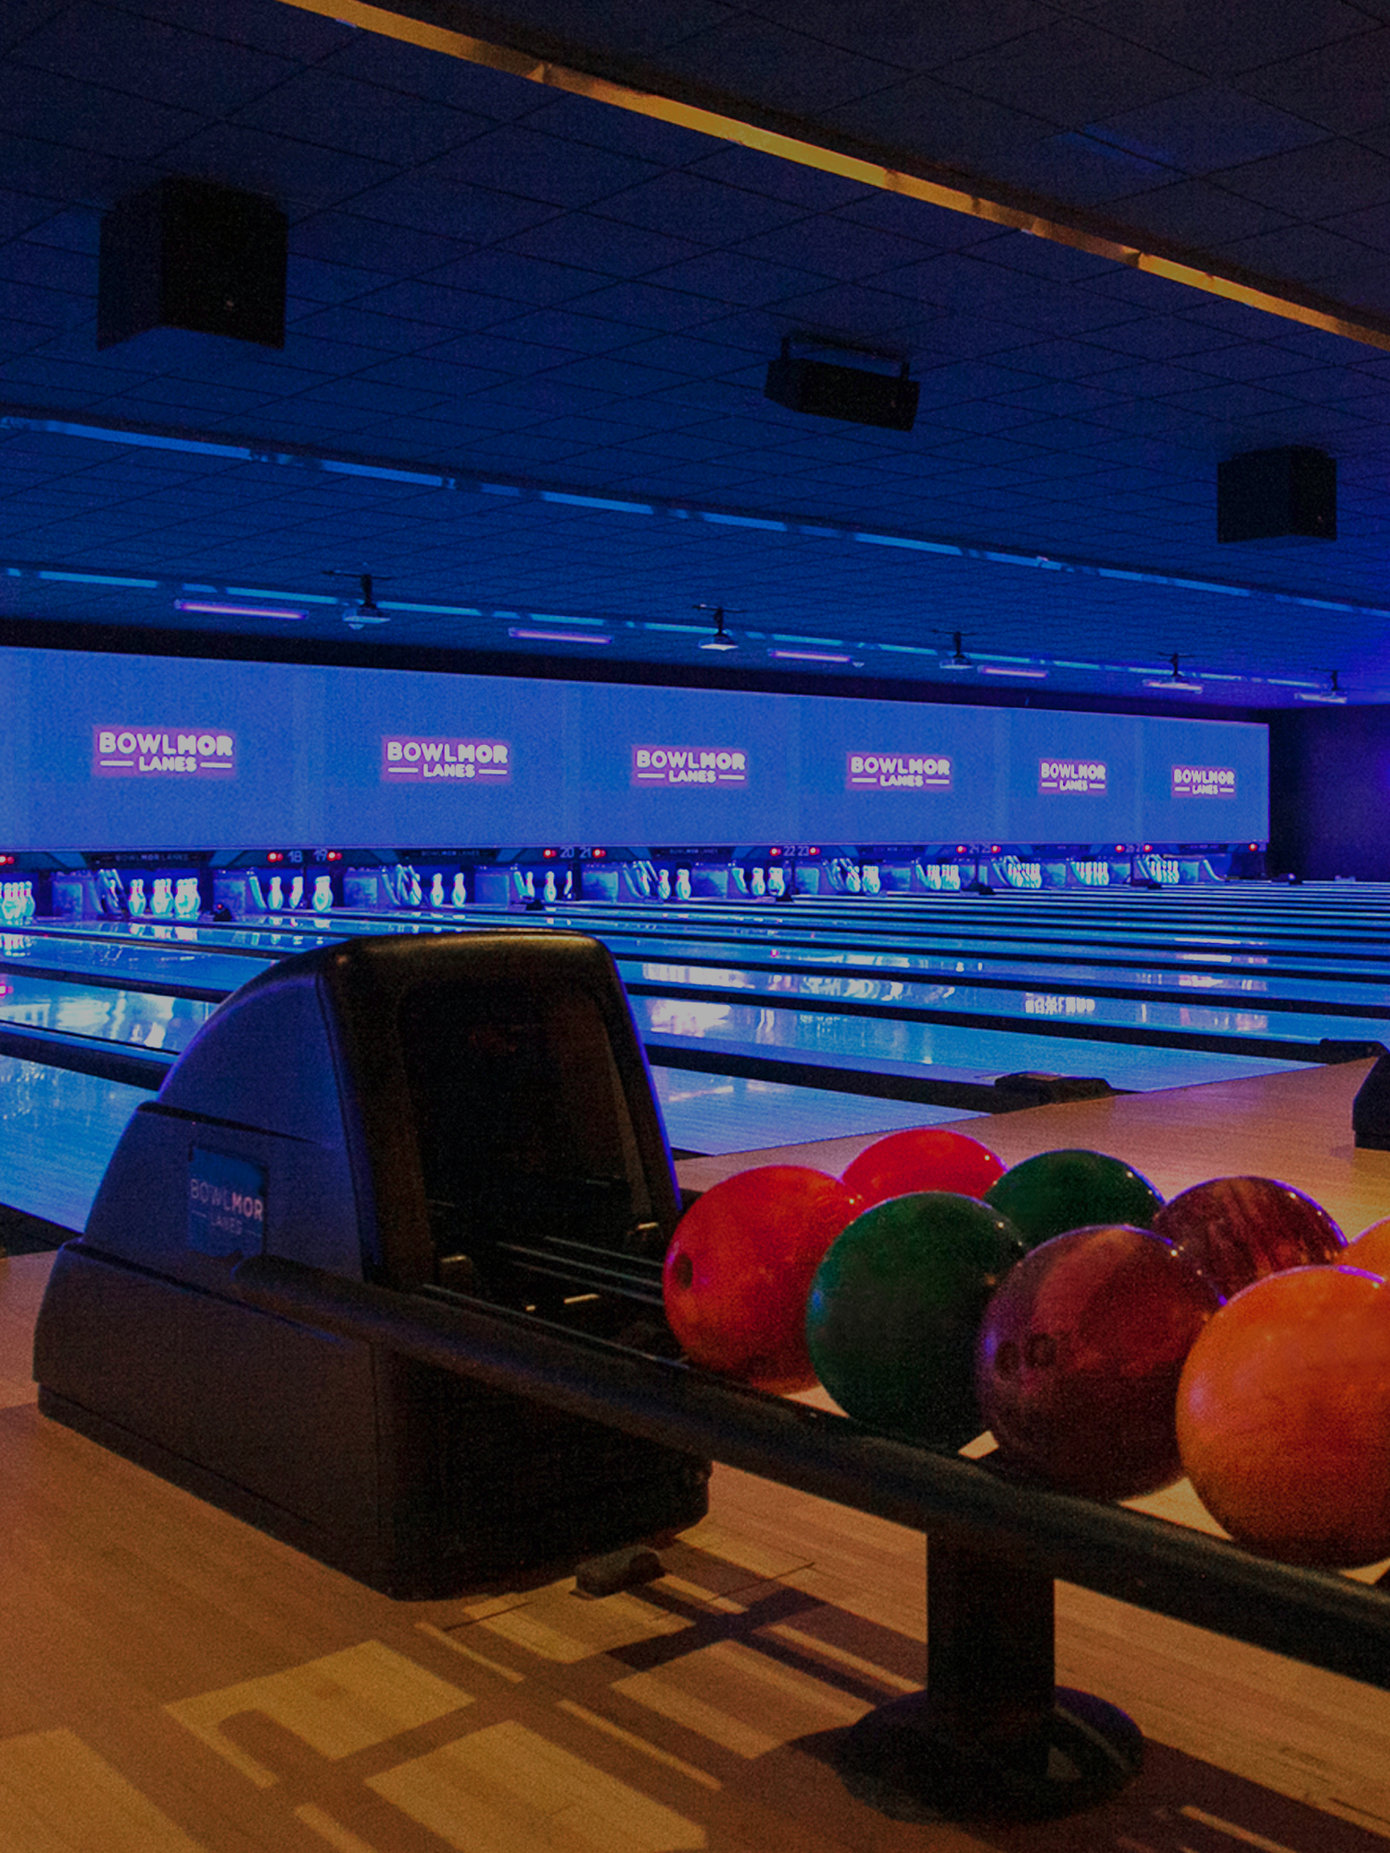 Bowling Alley & Sports Bar in White Plains | Bowlmor